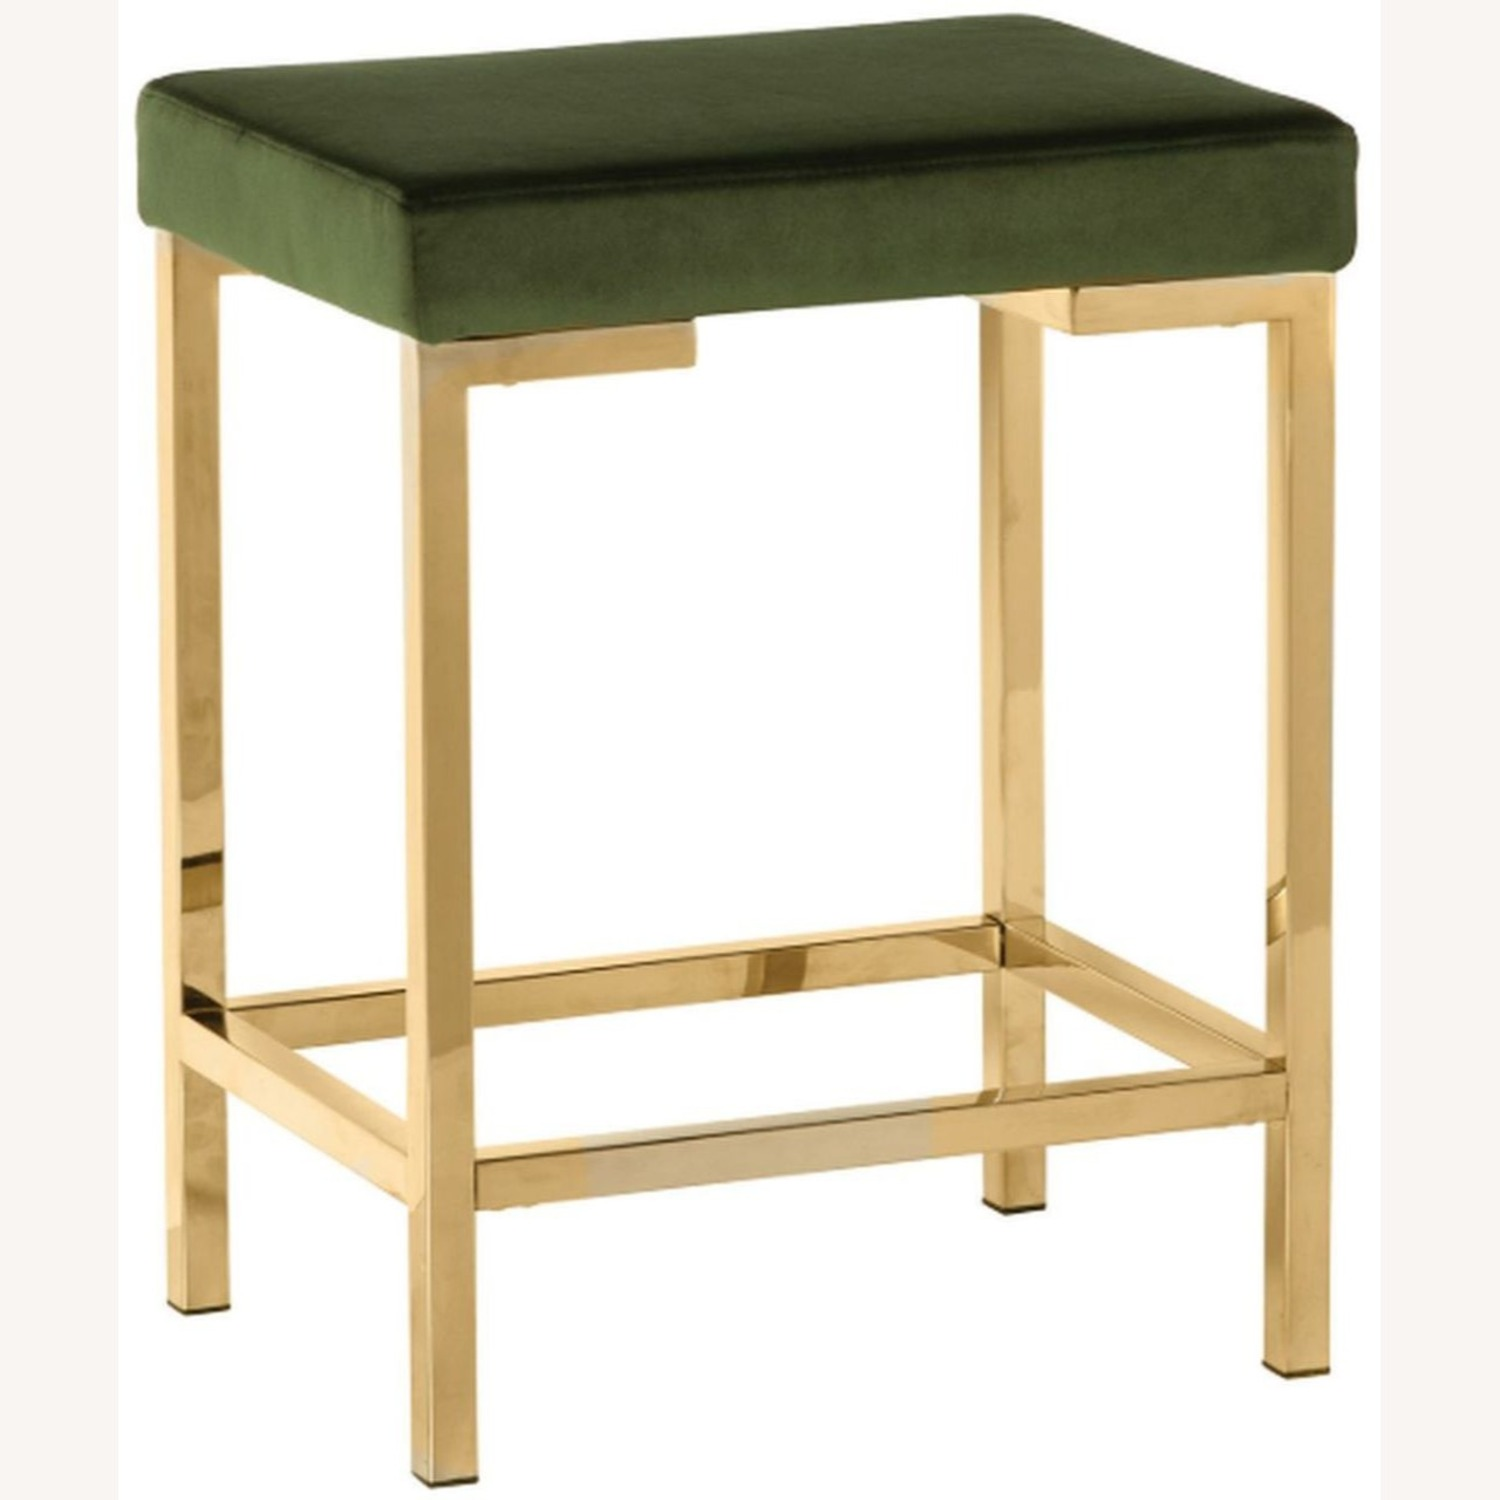 Minimalist Counter Height Stool In Green Fabric - image-0